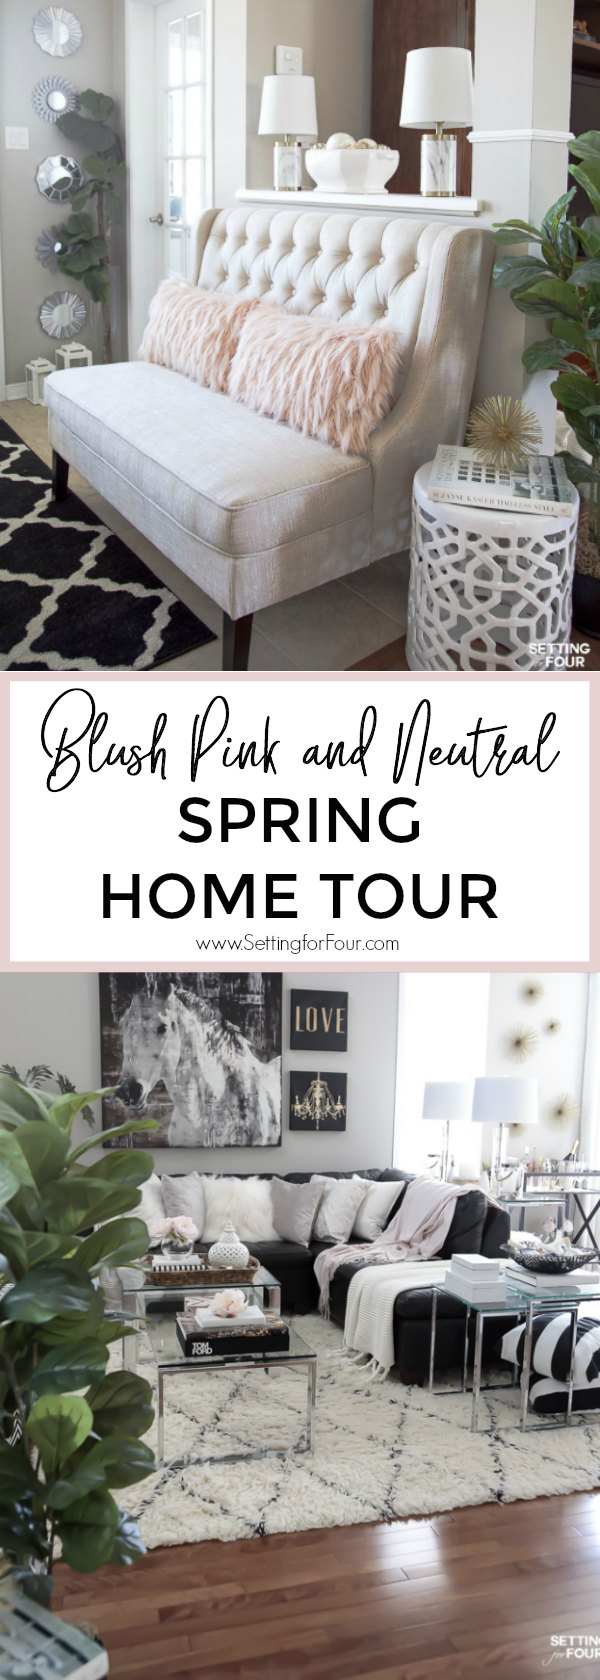 See my blush pink and neutral decor Spring home tour and discover lots of new Spring interior decor ideas for your home! I've added lots of blush pink colors, floral arrangements to my neutral decor - see them all! You'll also be able to peak into 30 talented design blogger's Spring home tours too - decor inspiration for every room in your house! #homedecor #Spring #hometour #entryway #familyroom #diningroom